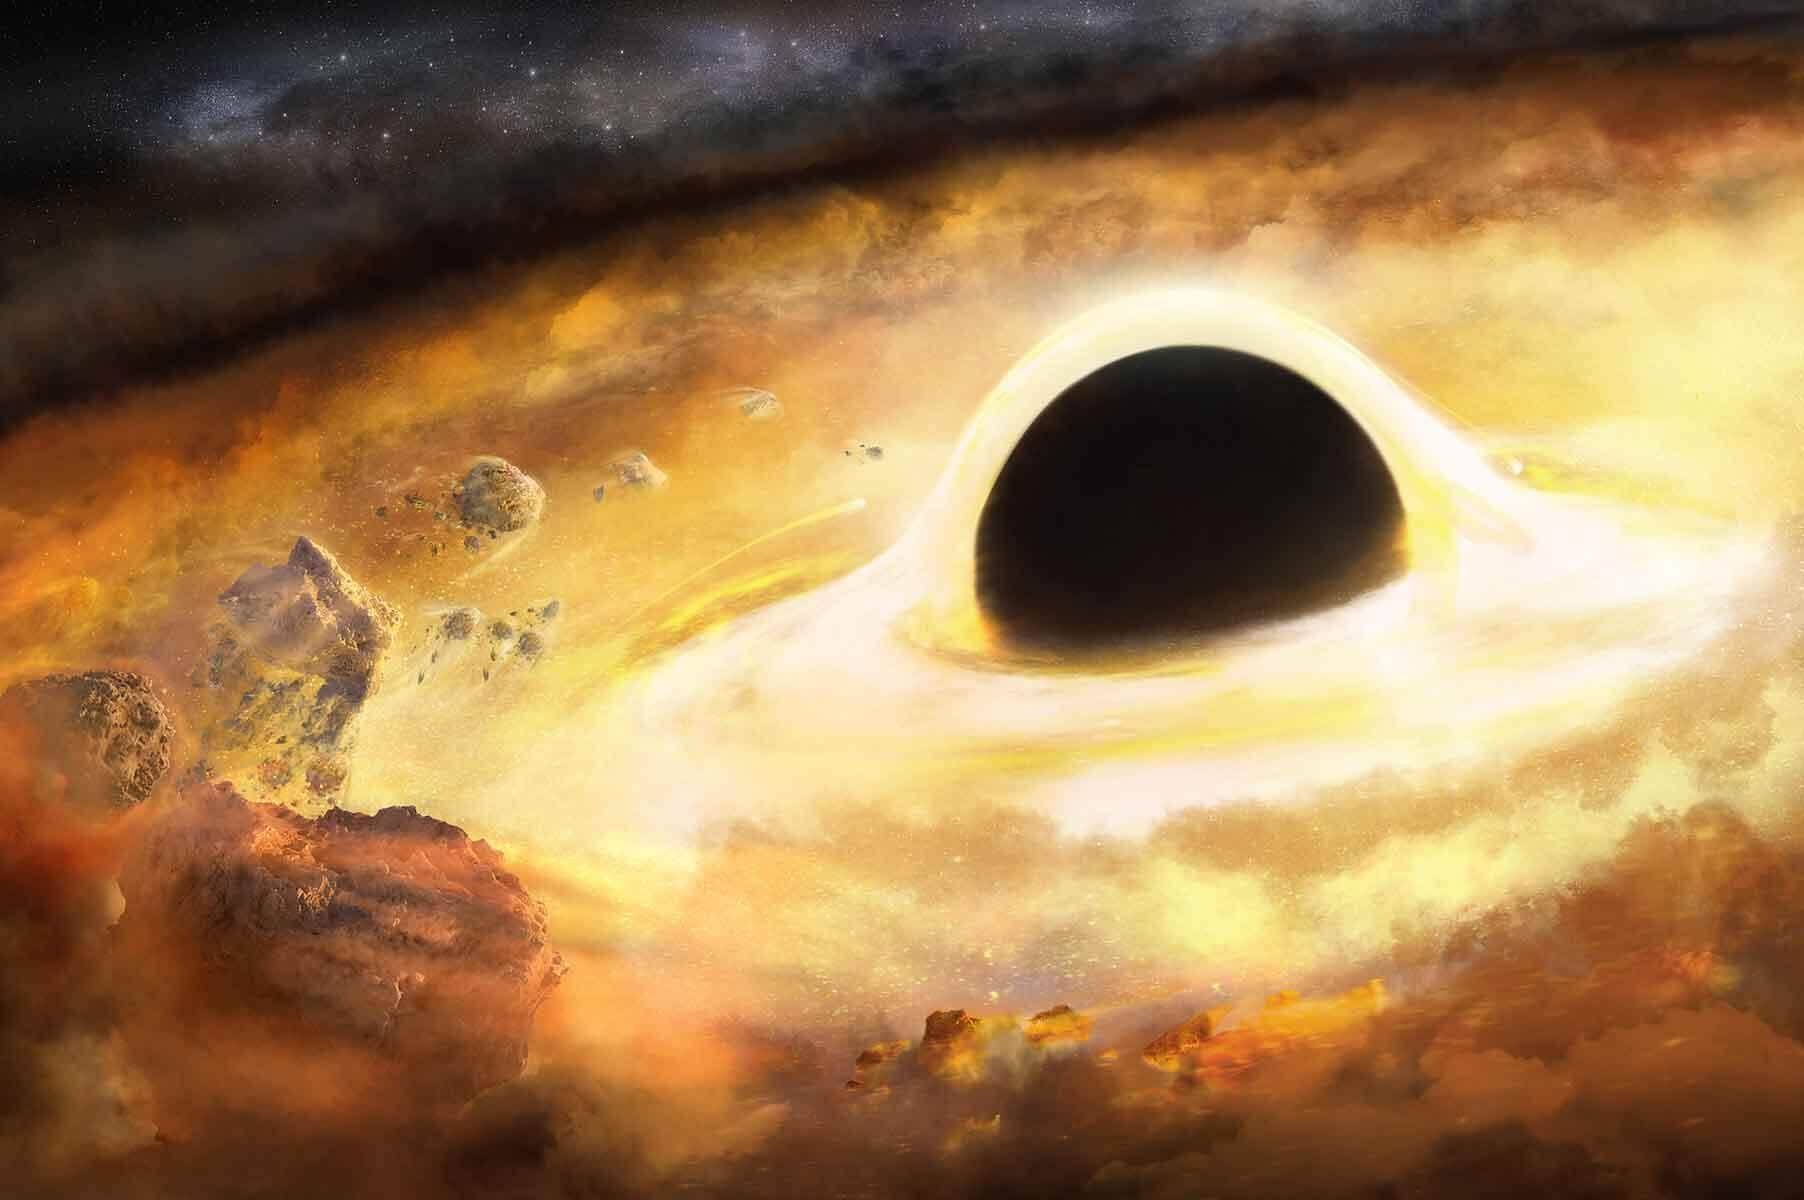 Black hole image with very bright yellow event horizon surrounding it.